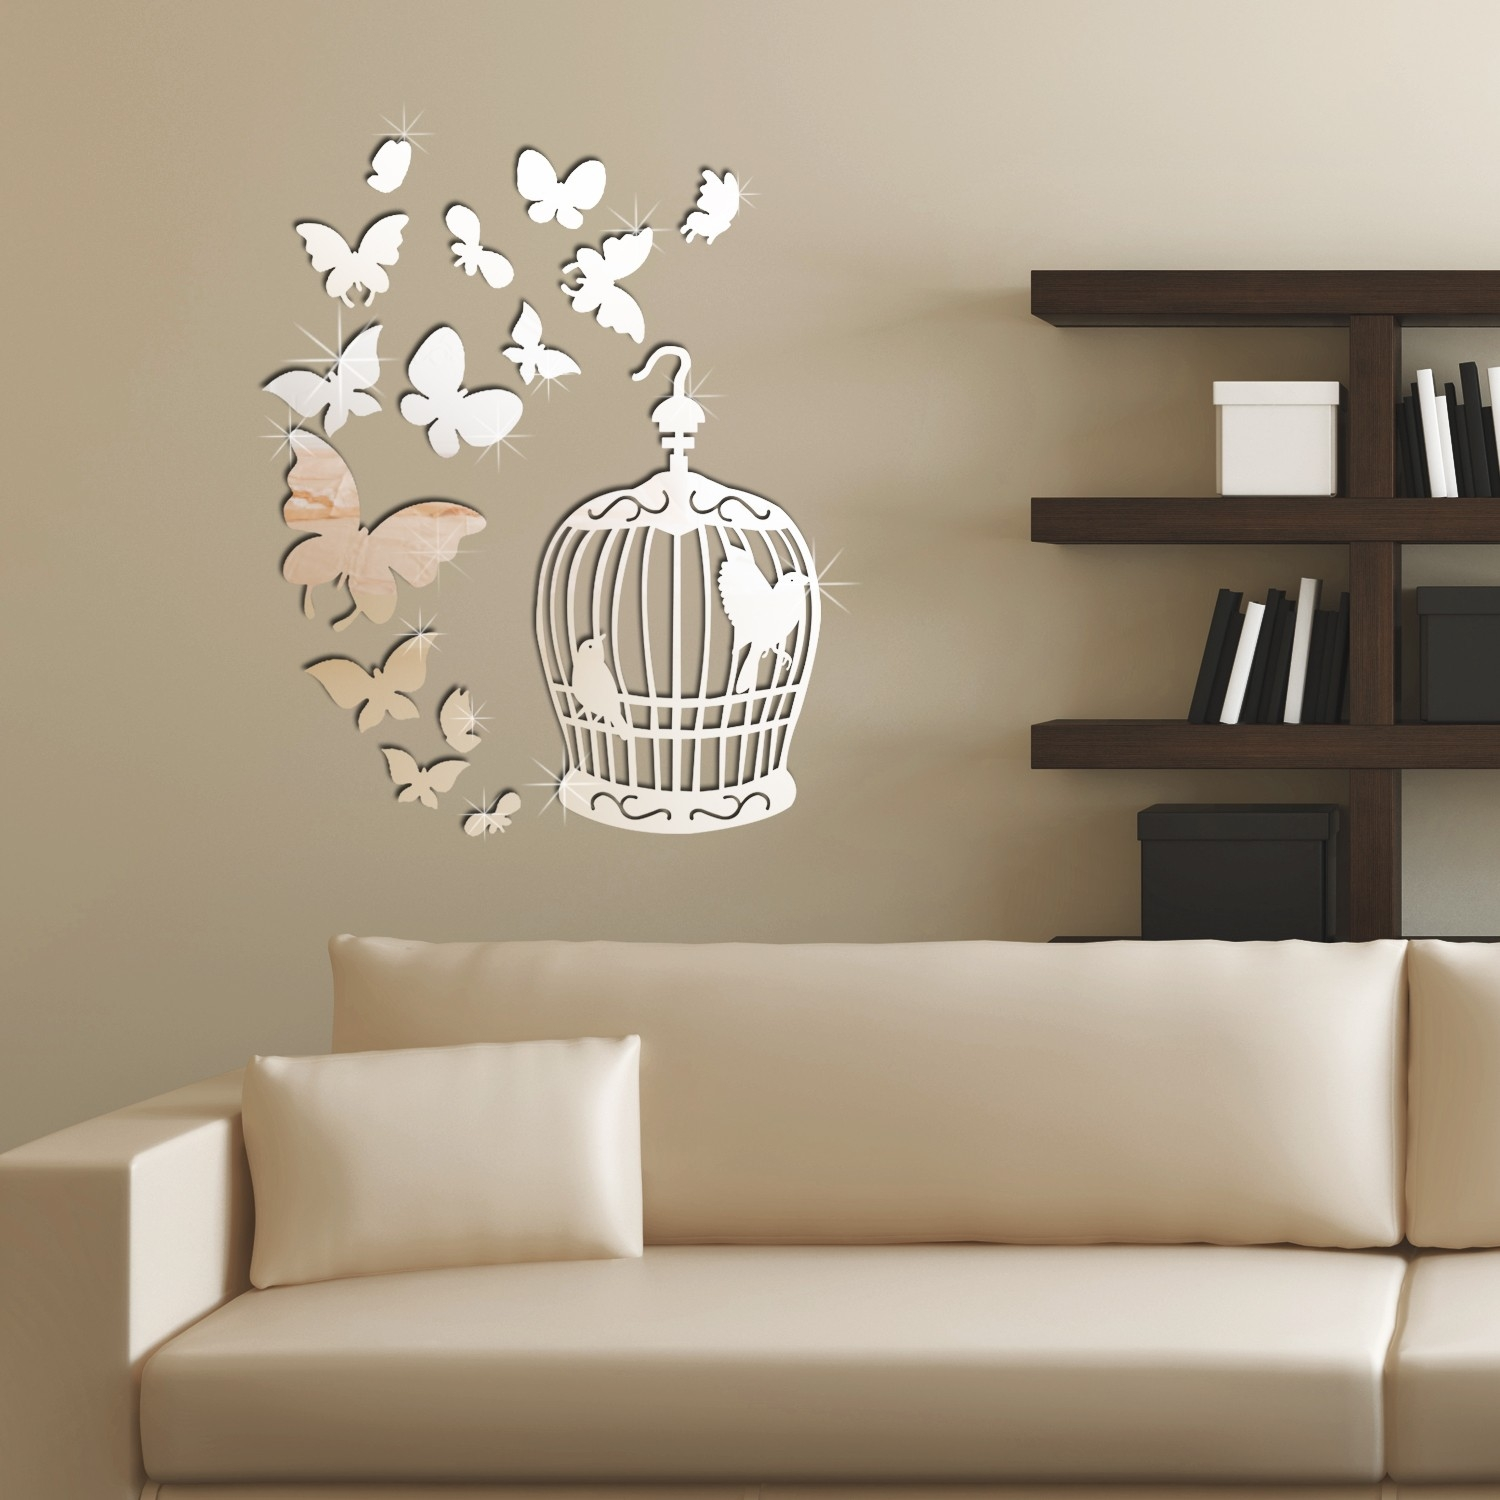 Mirrored Wall Art Decals